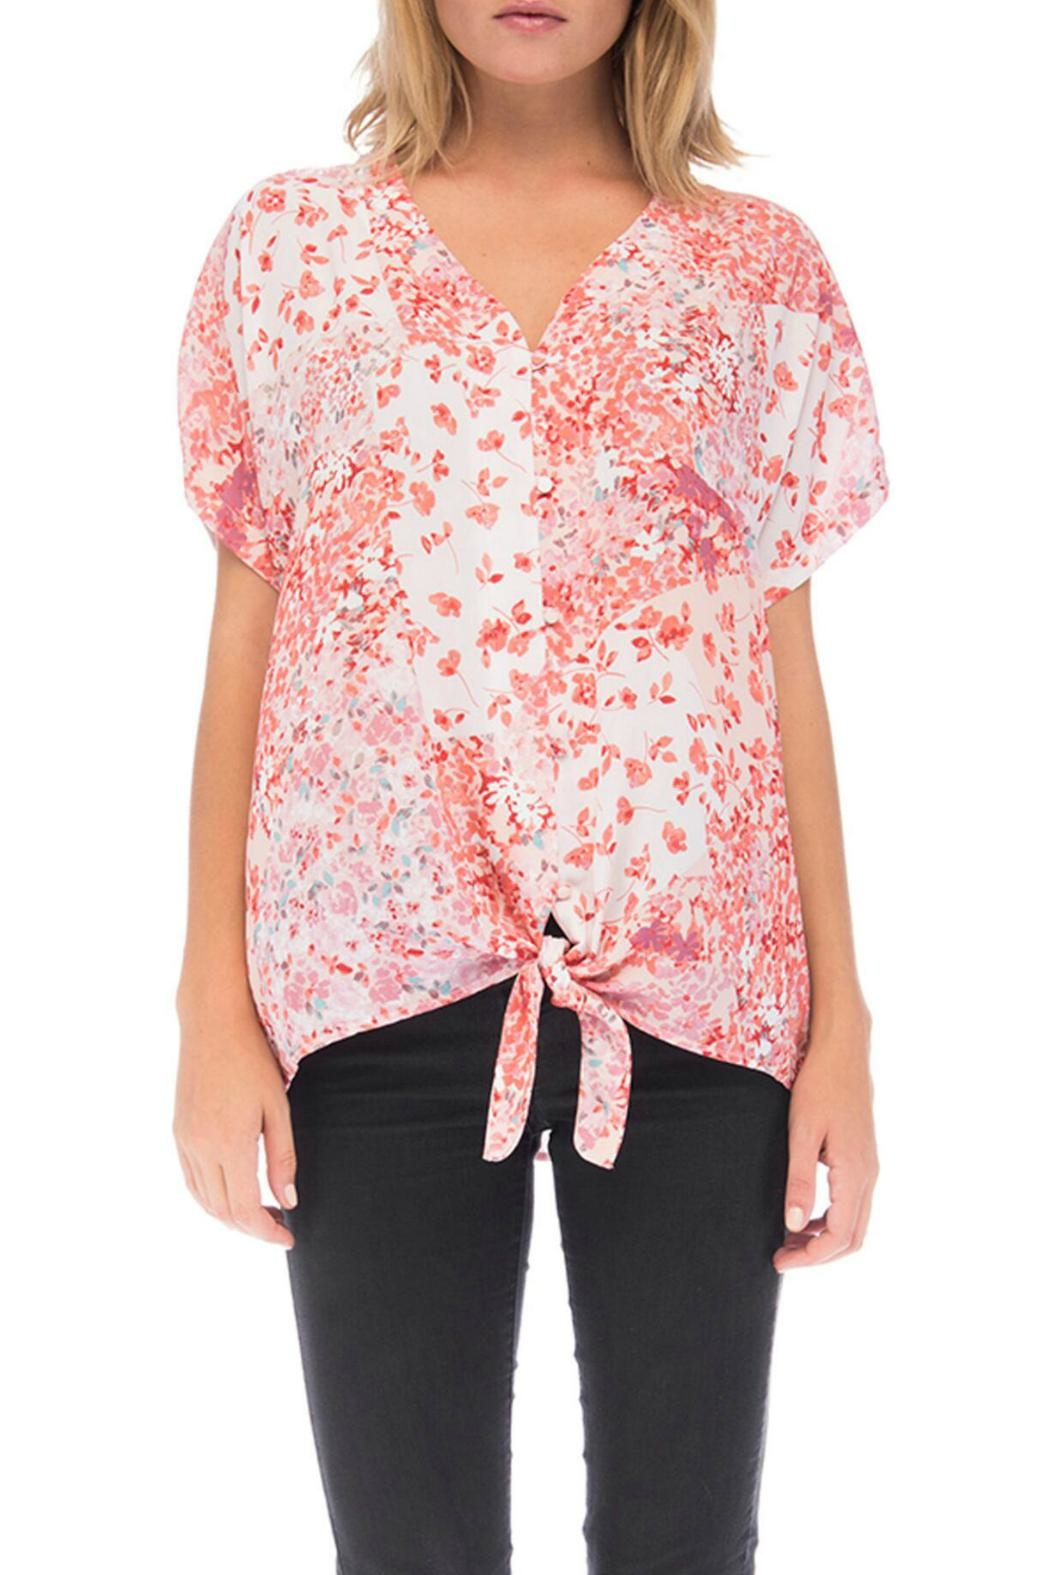 Bobeau Floral Button-Up Shirt - Main Image